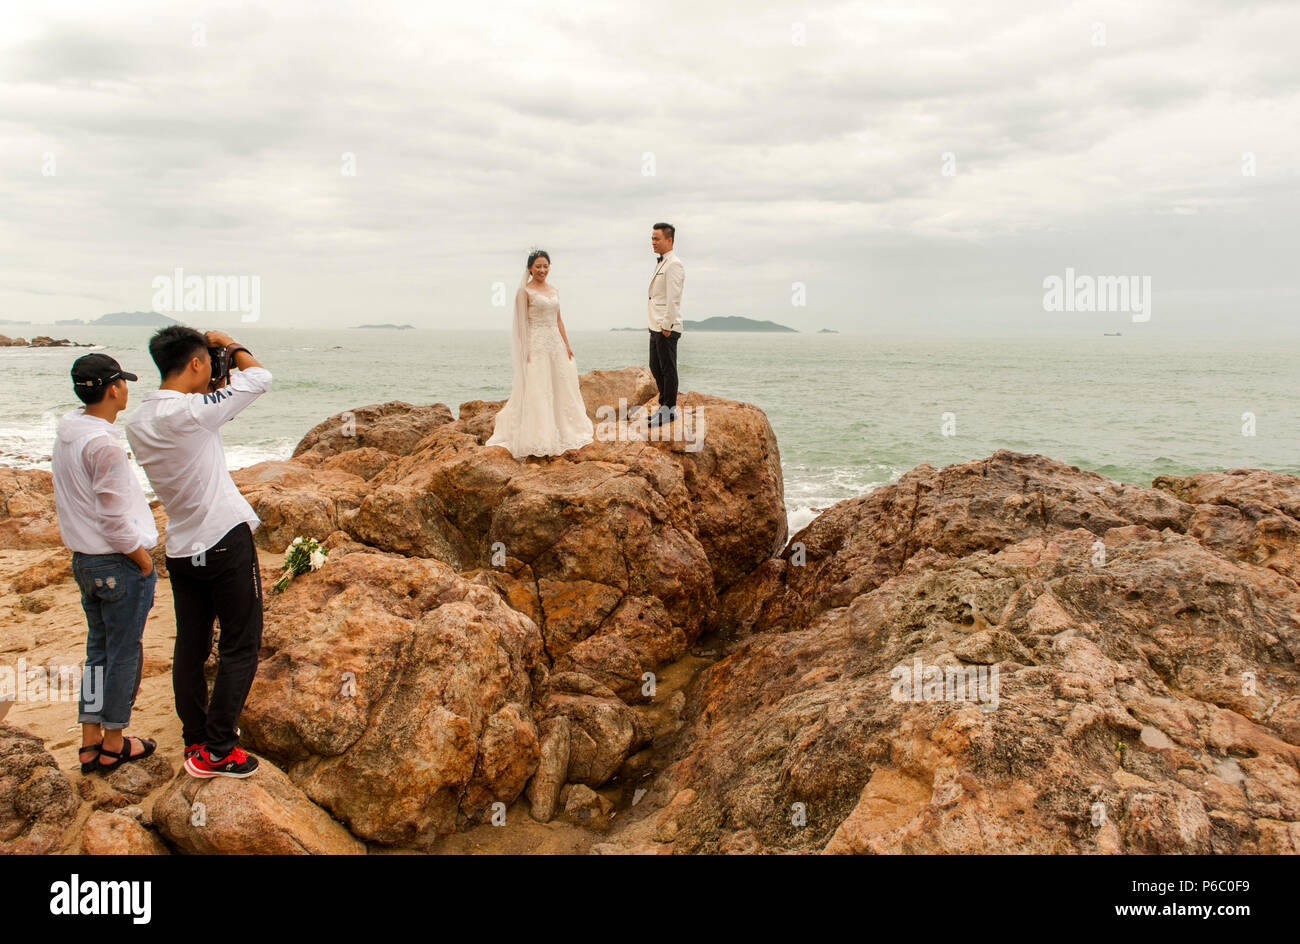 The granite rocks of Tianya Haijiao are a popular location for wedding pictures at Sanya, Hainan Dao, China - Stock Image